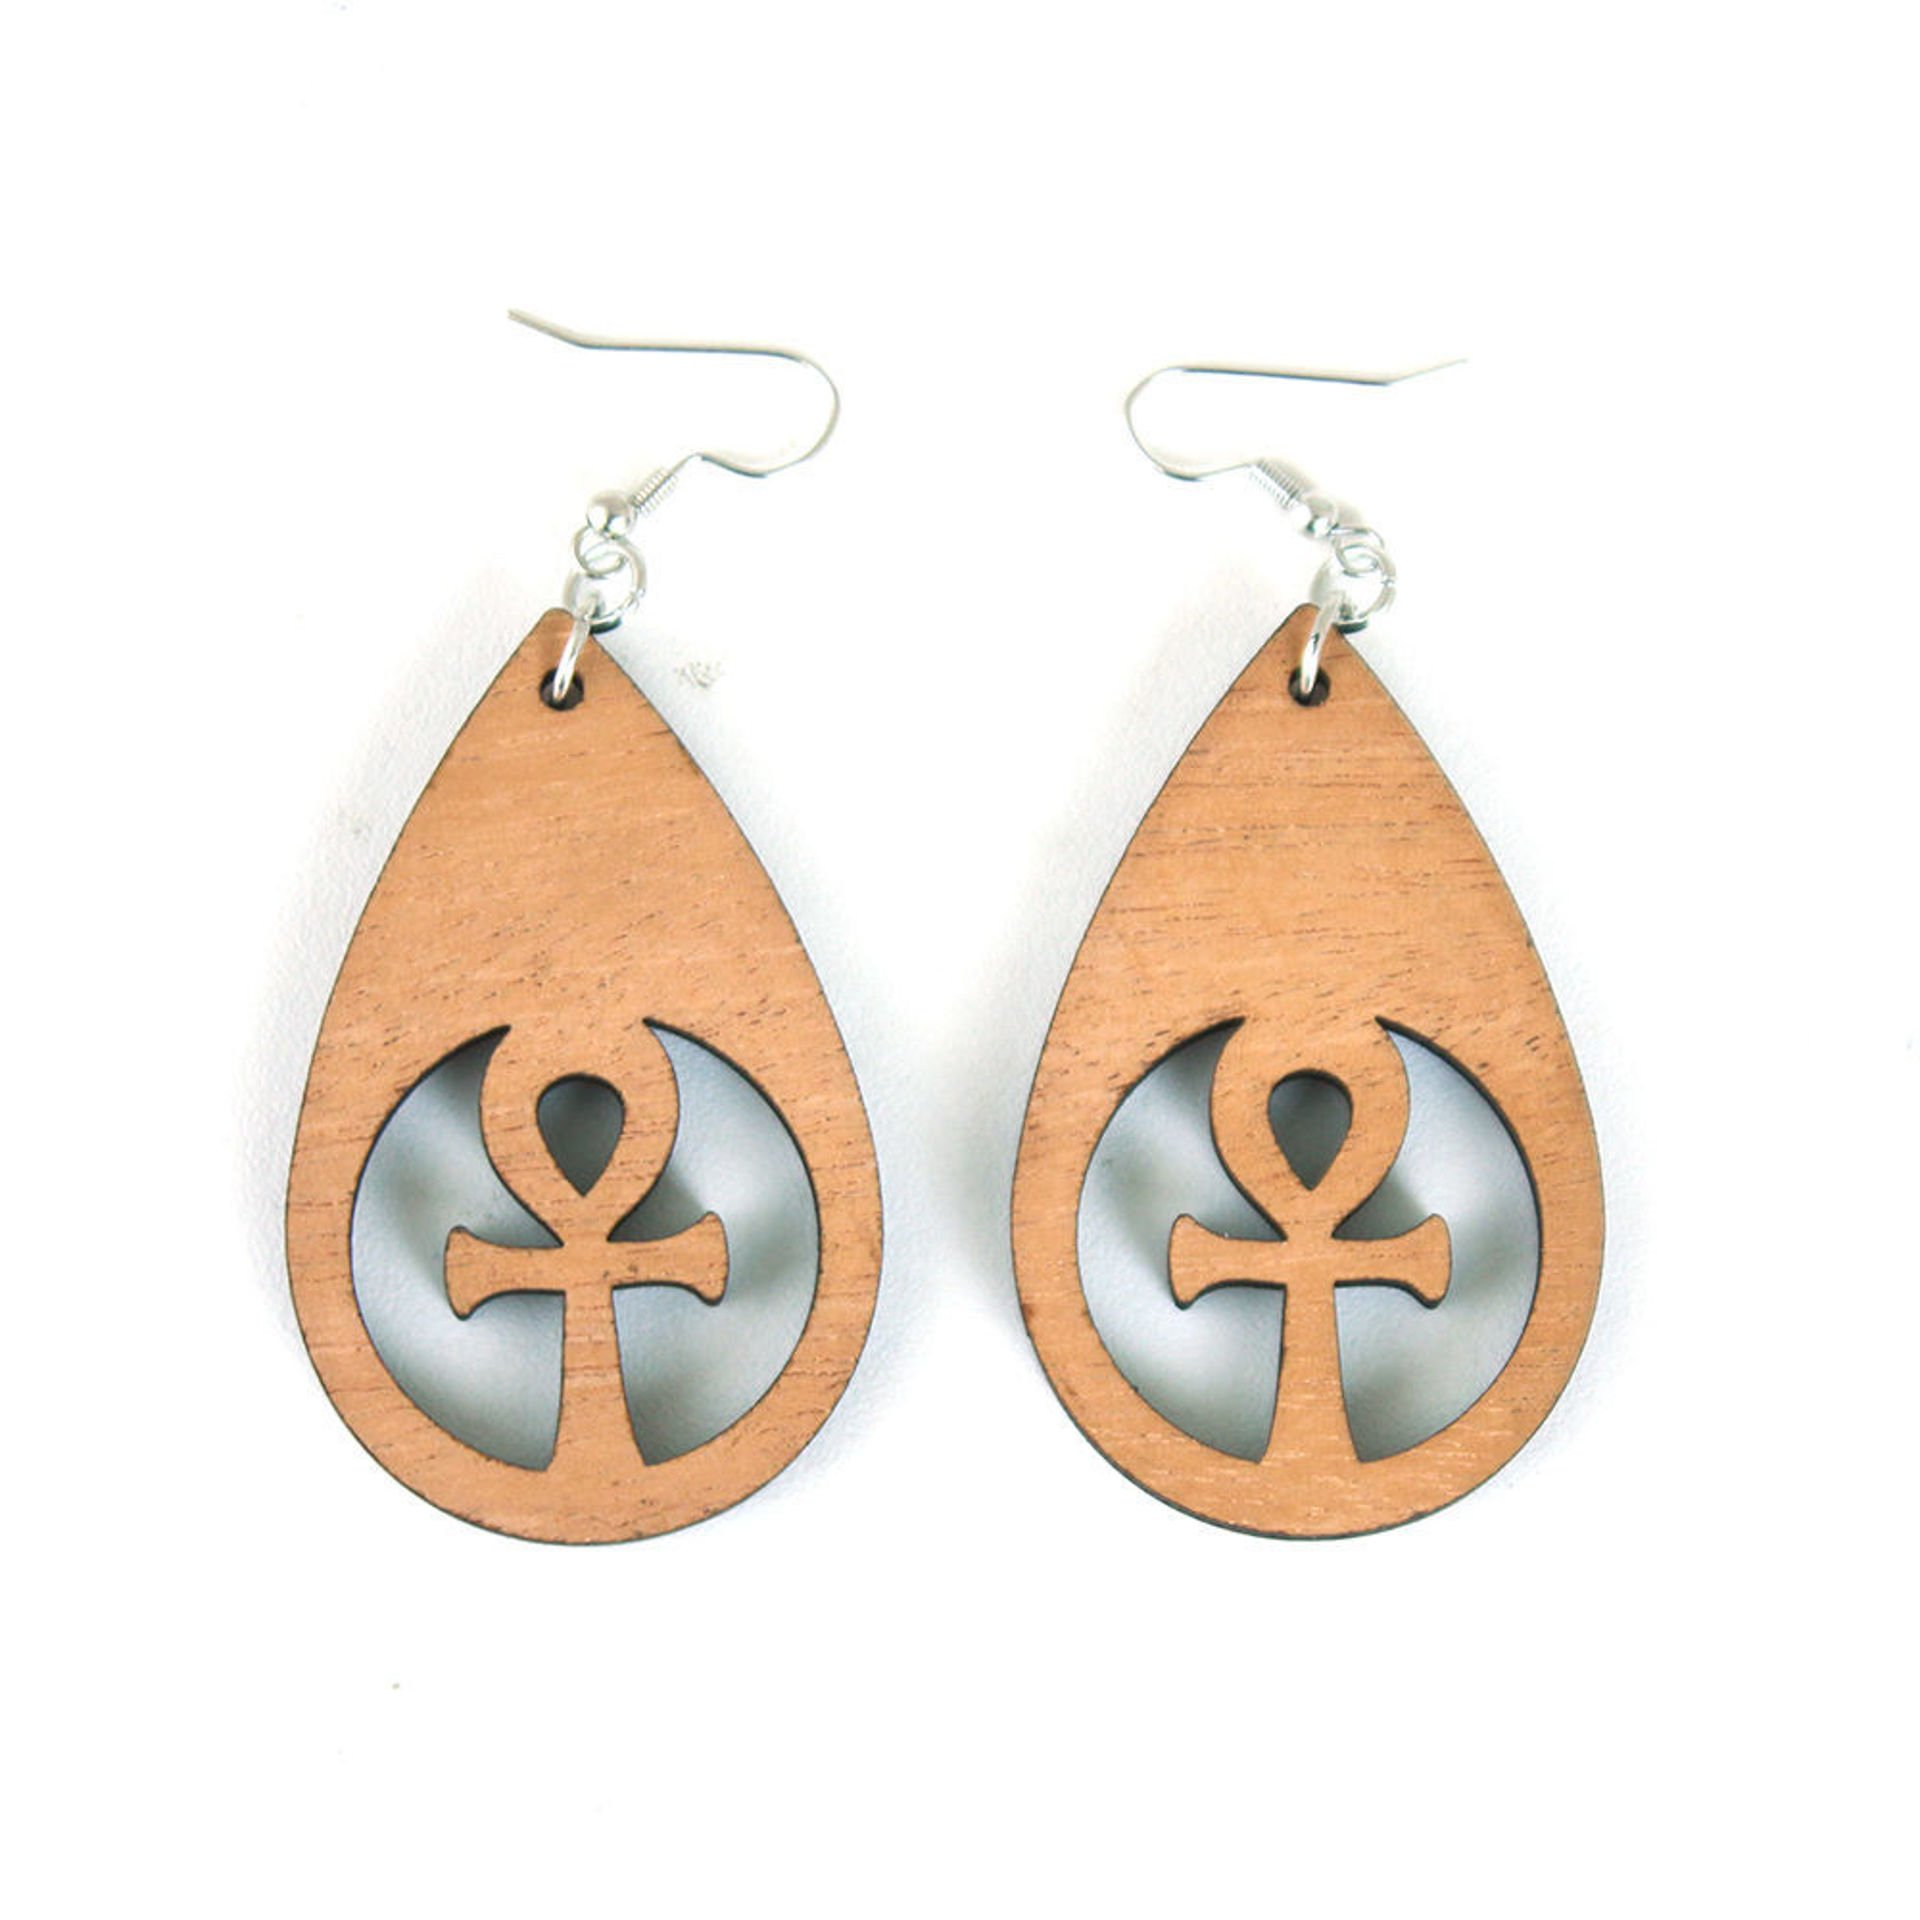 Picture of Wooden Tear Drop Earrings - Ankh